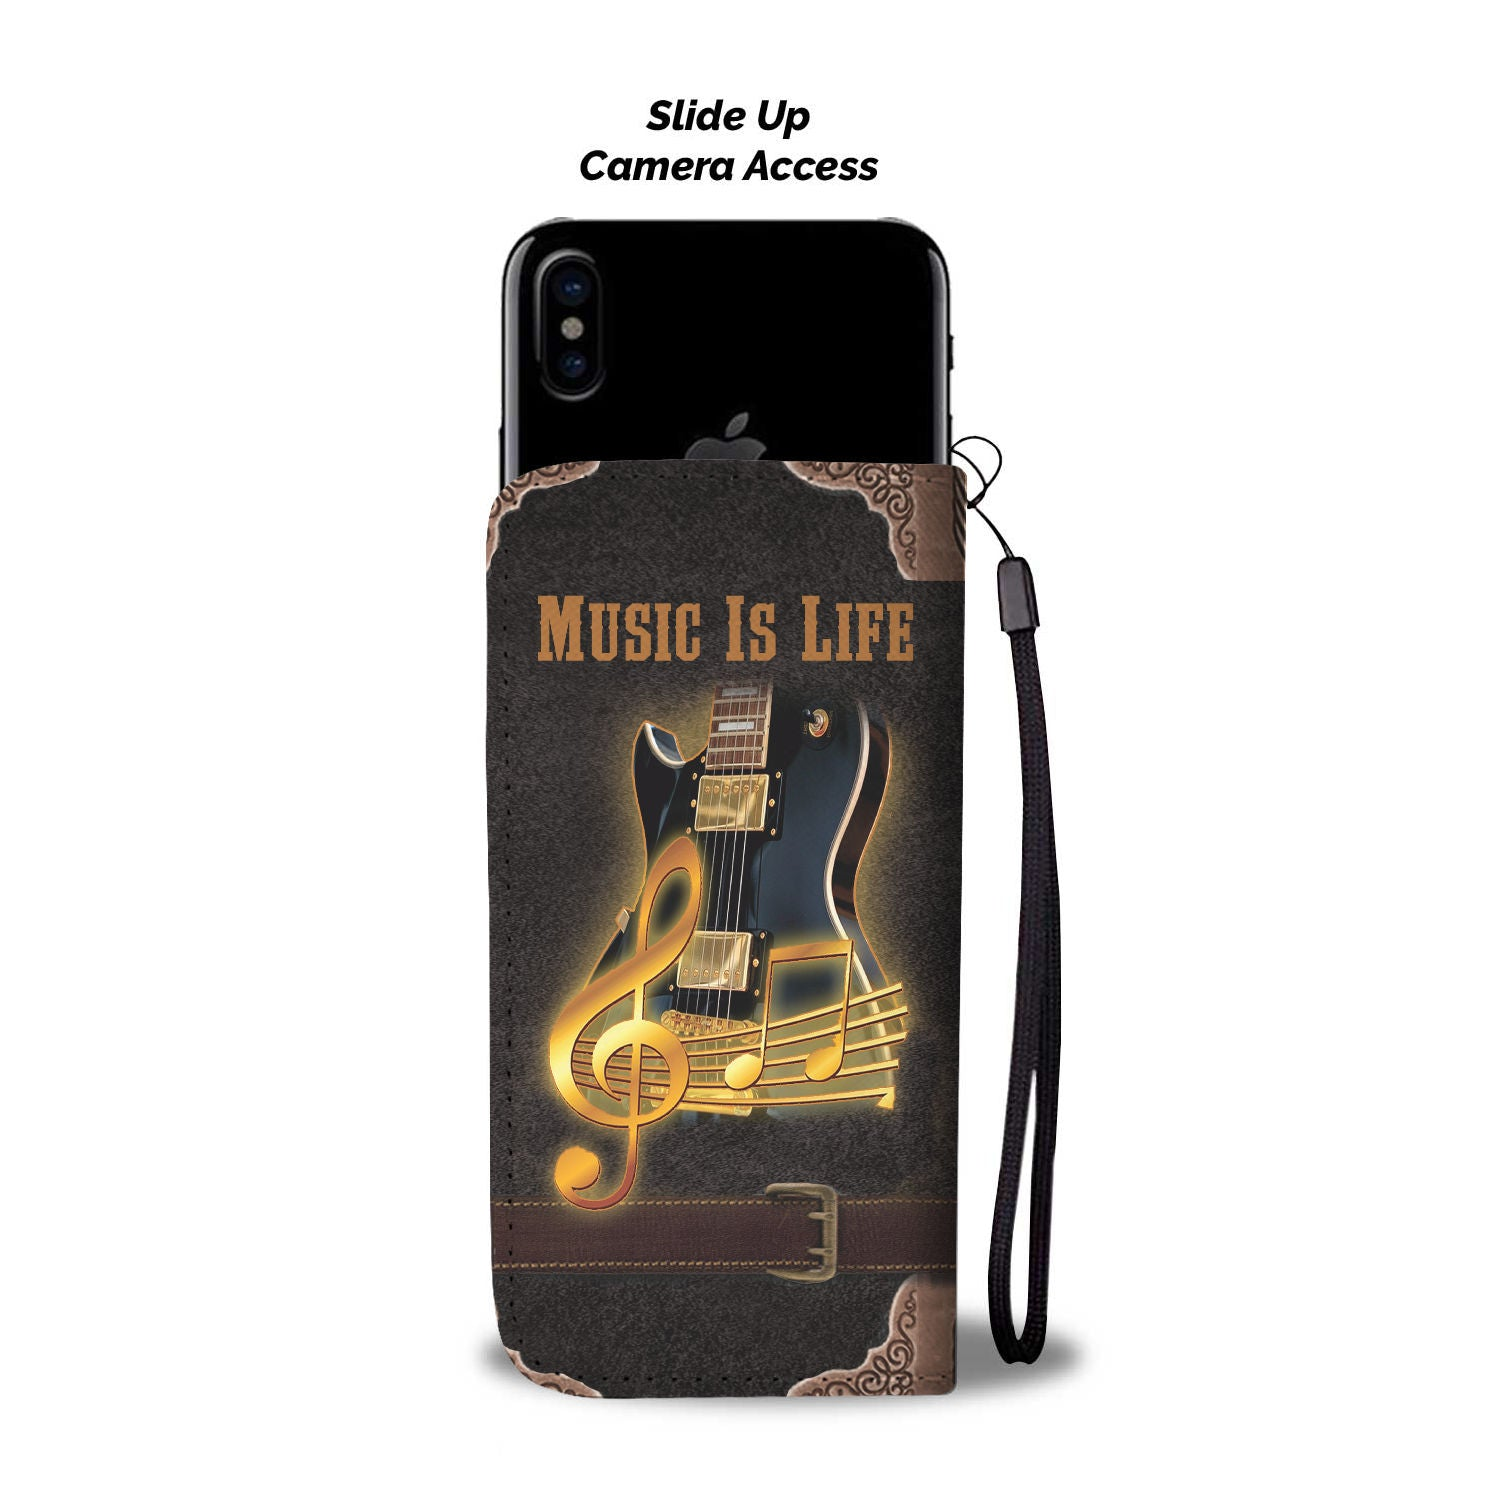 the latest e6a62 adb19 Music Is Life Cell Phone Wallet Case